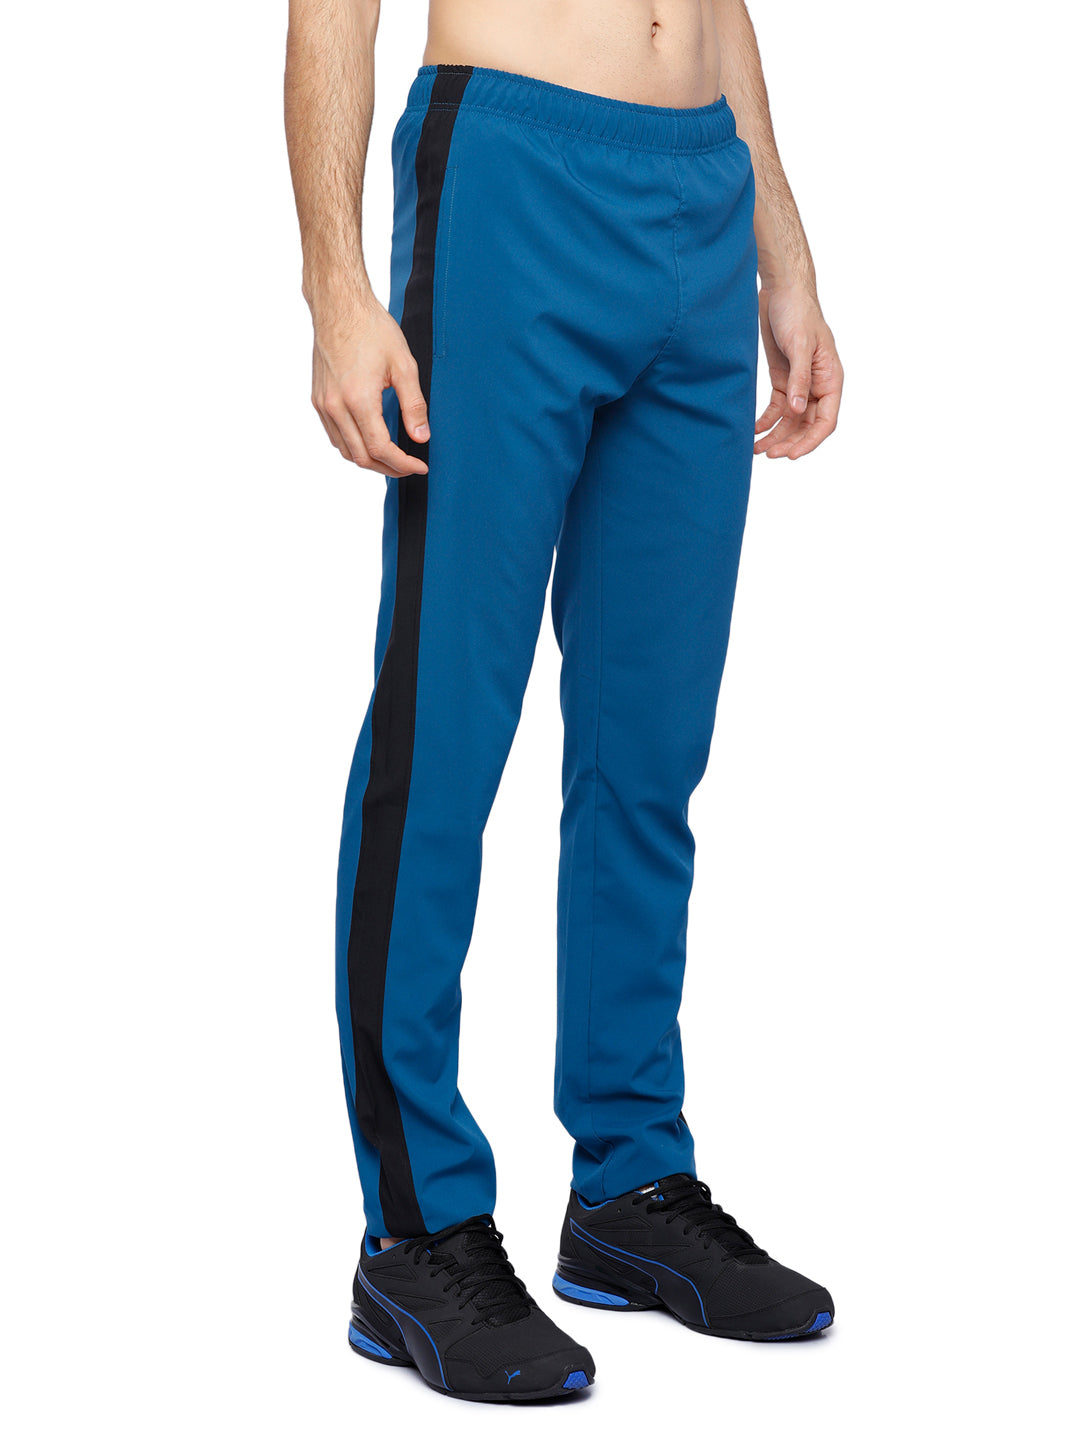 Piranha Men's Teal Woven Track Pants - MTP322